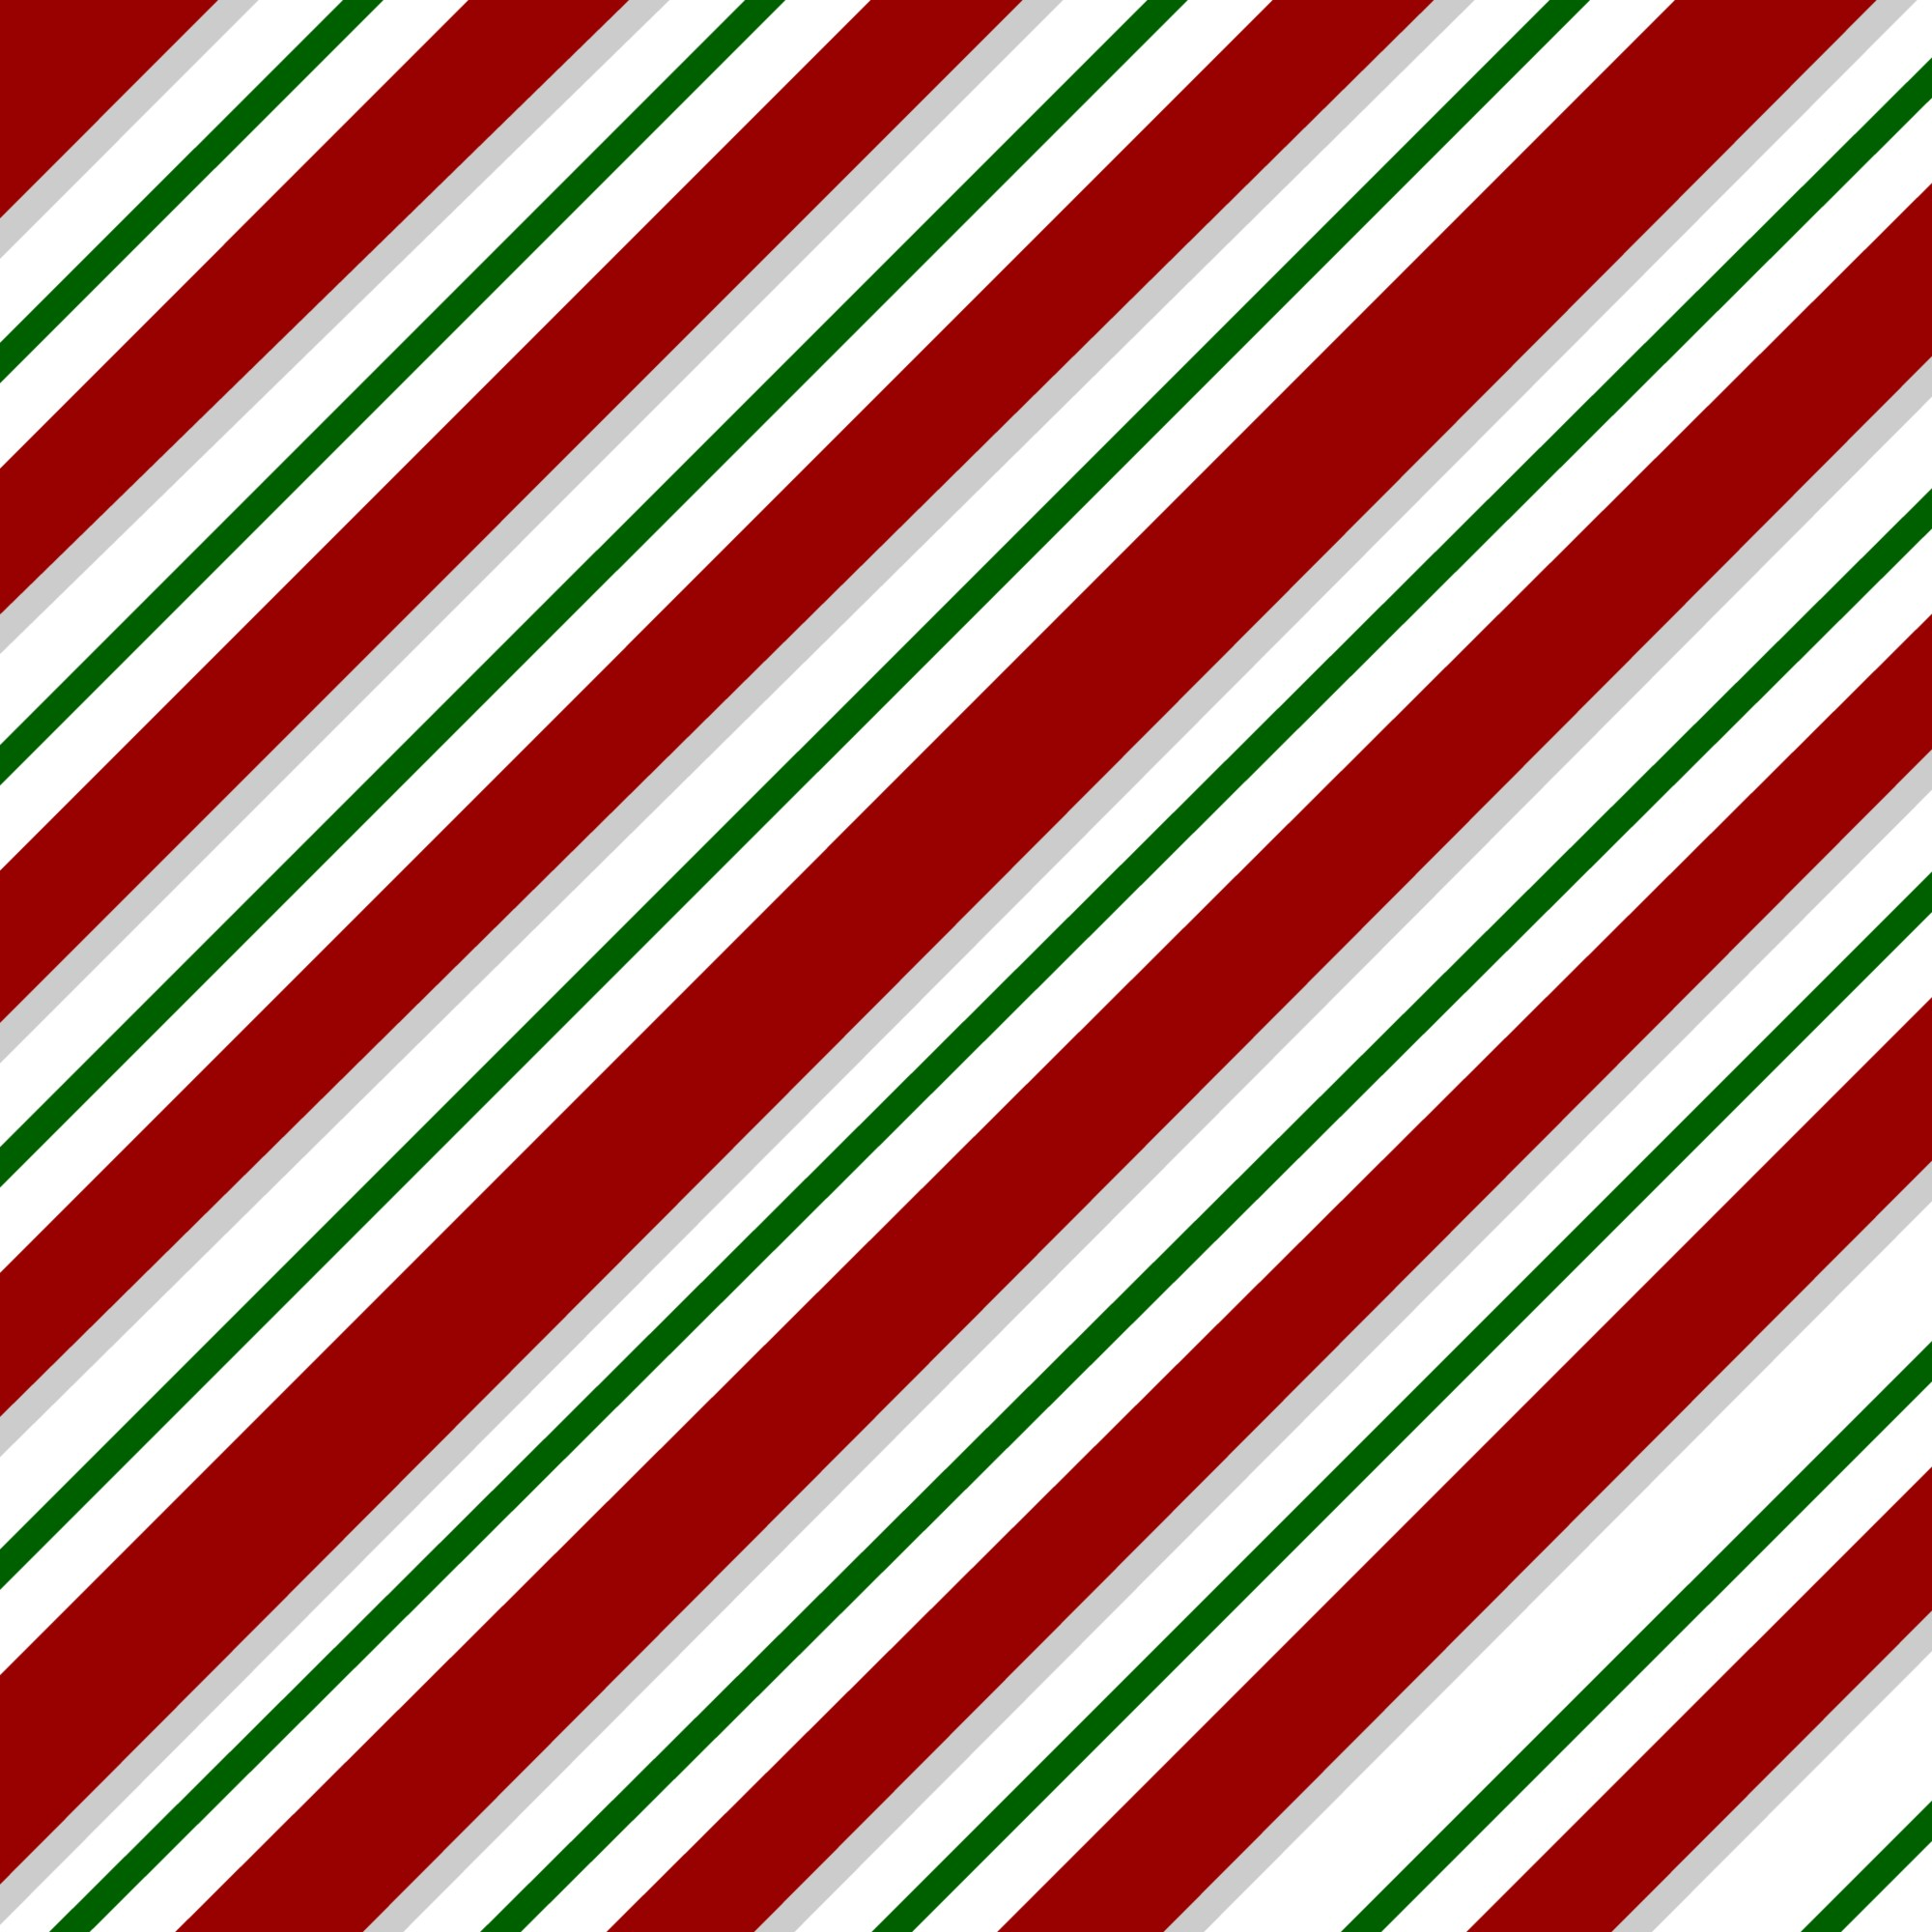 Cowboy Bebop Iphone X Wallpaper Candy Cane Background 183 ① Download Free Cool Hd Wallpapers